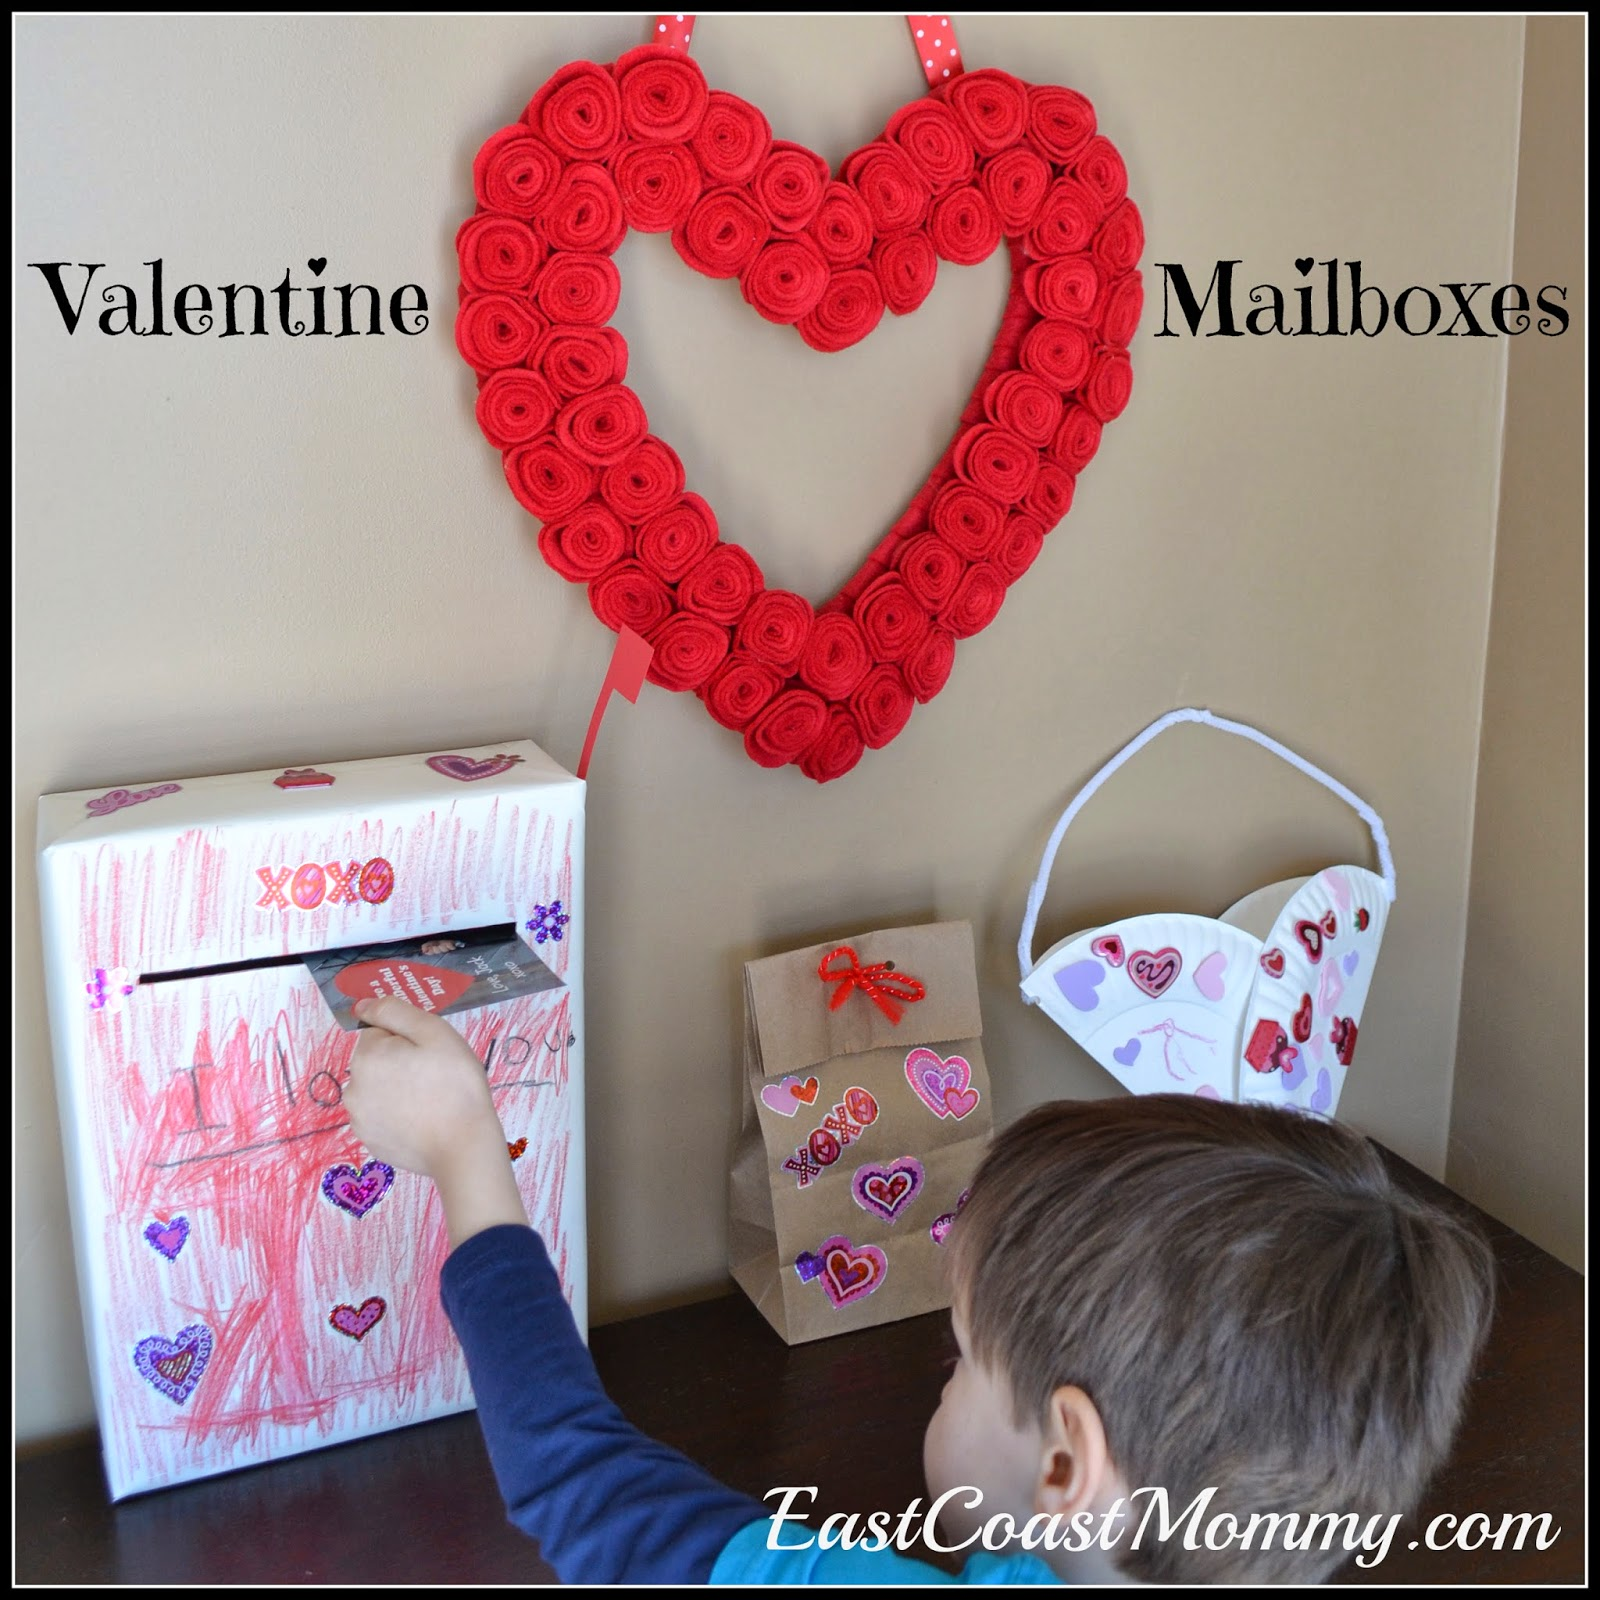 today i am sharing all three valentine mailbox tutorials at cbc kids and you can find them here - Valentine Mailboxes